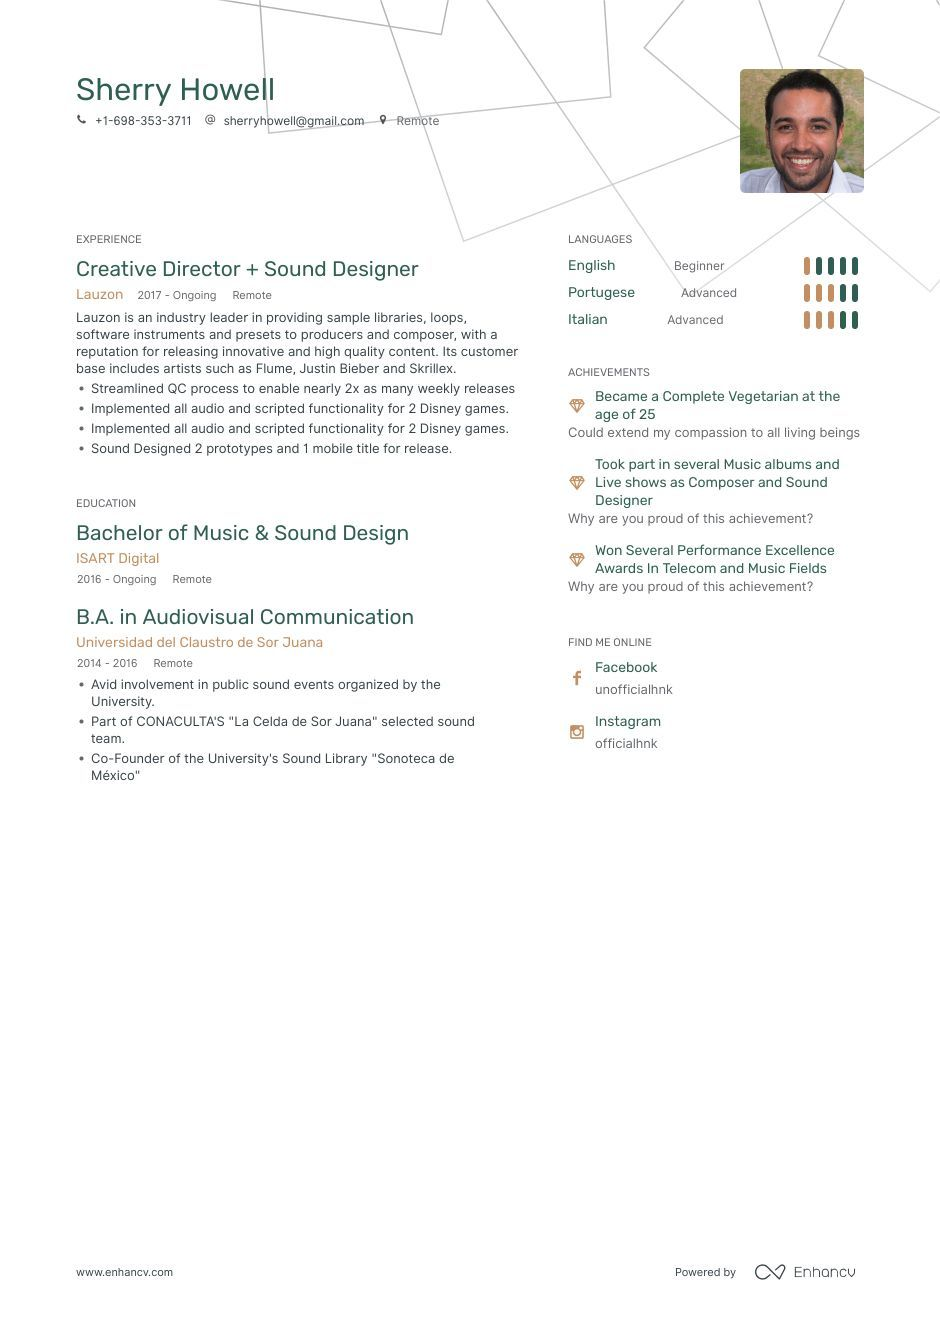 Download sound designer resume example for 2020 with